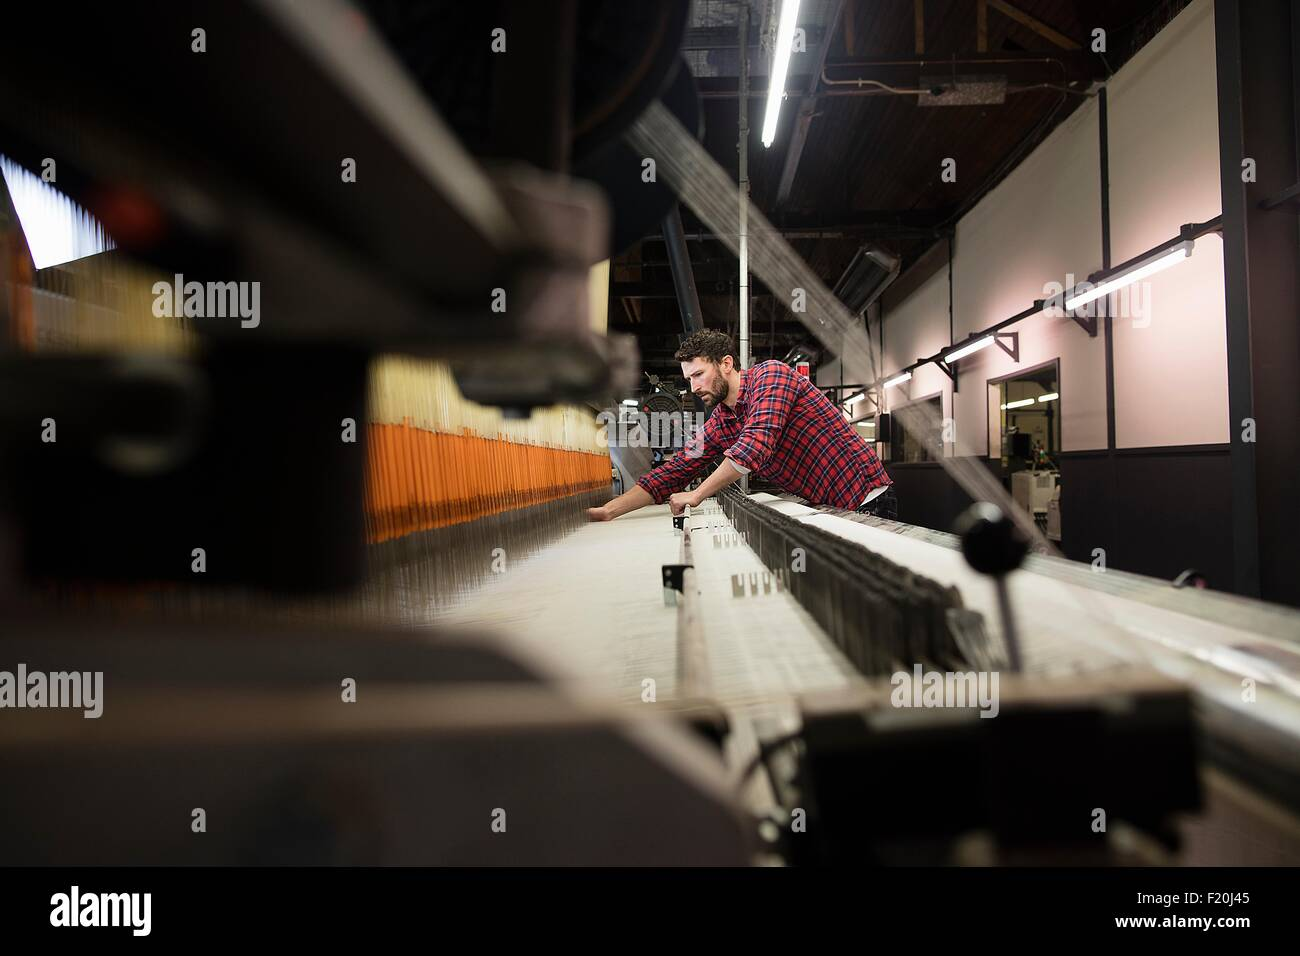 Young male weaver working at old weaving machine in textile mill - Stock Image